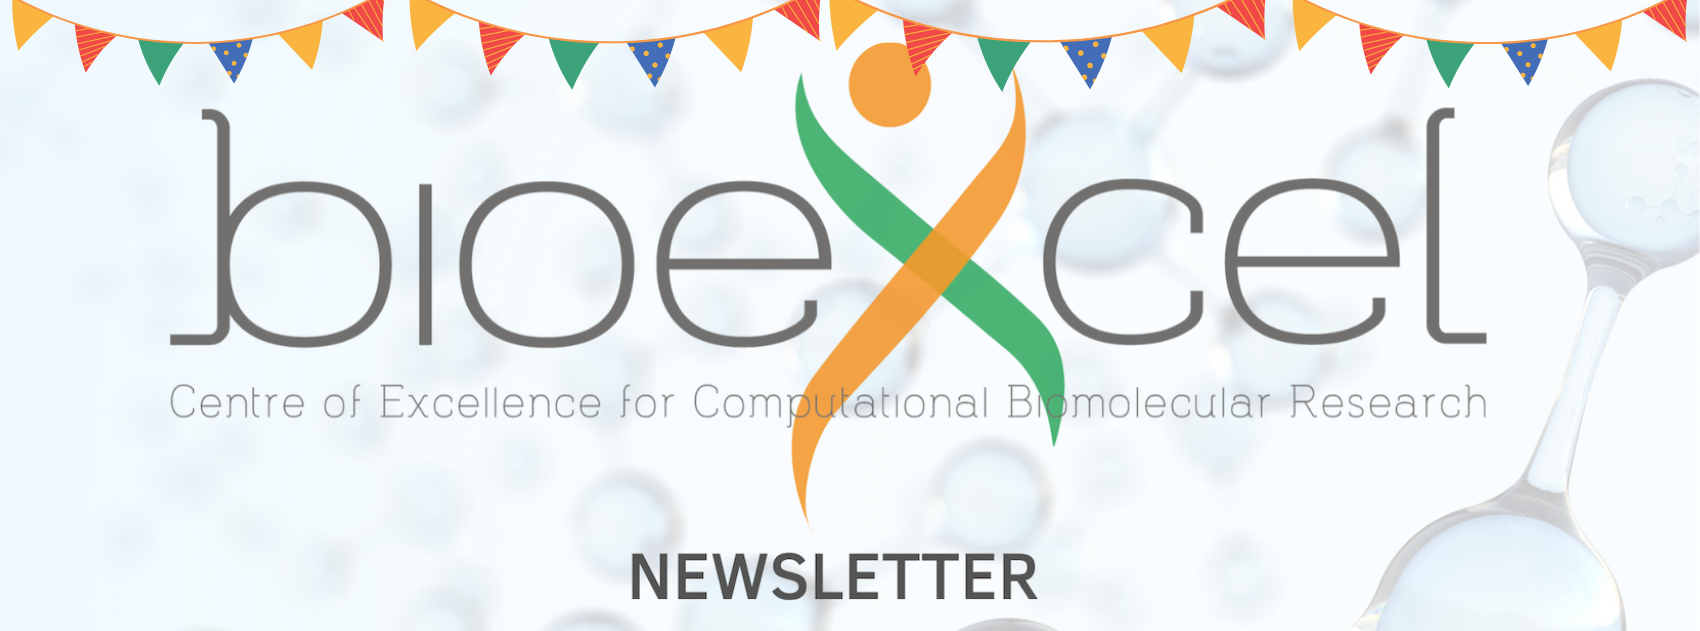 BioExcel newsletter header with colourful streamers on the top